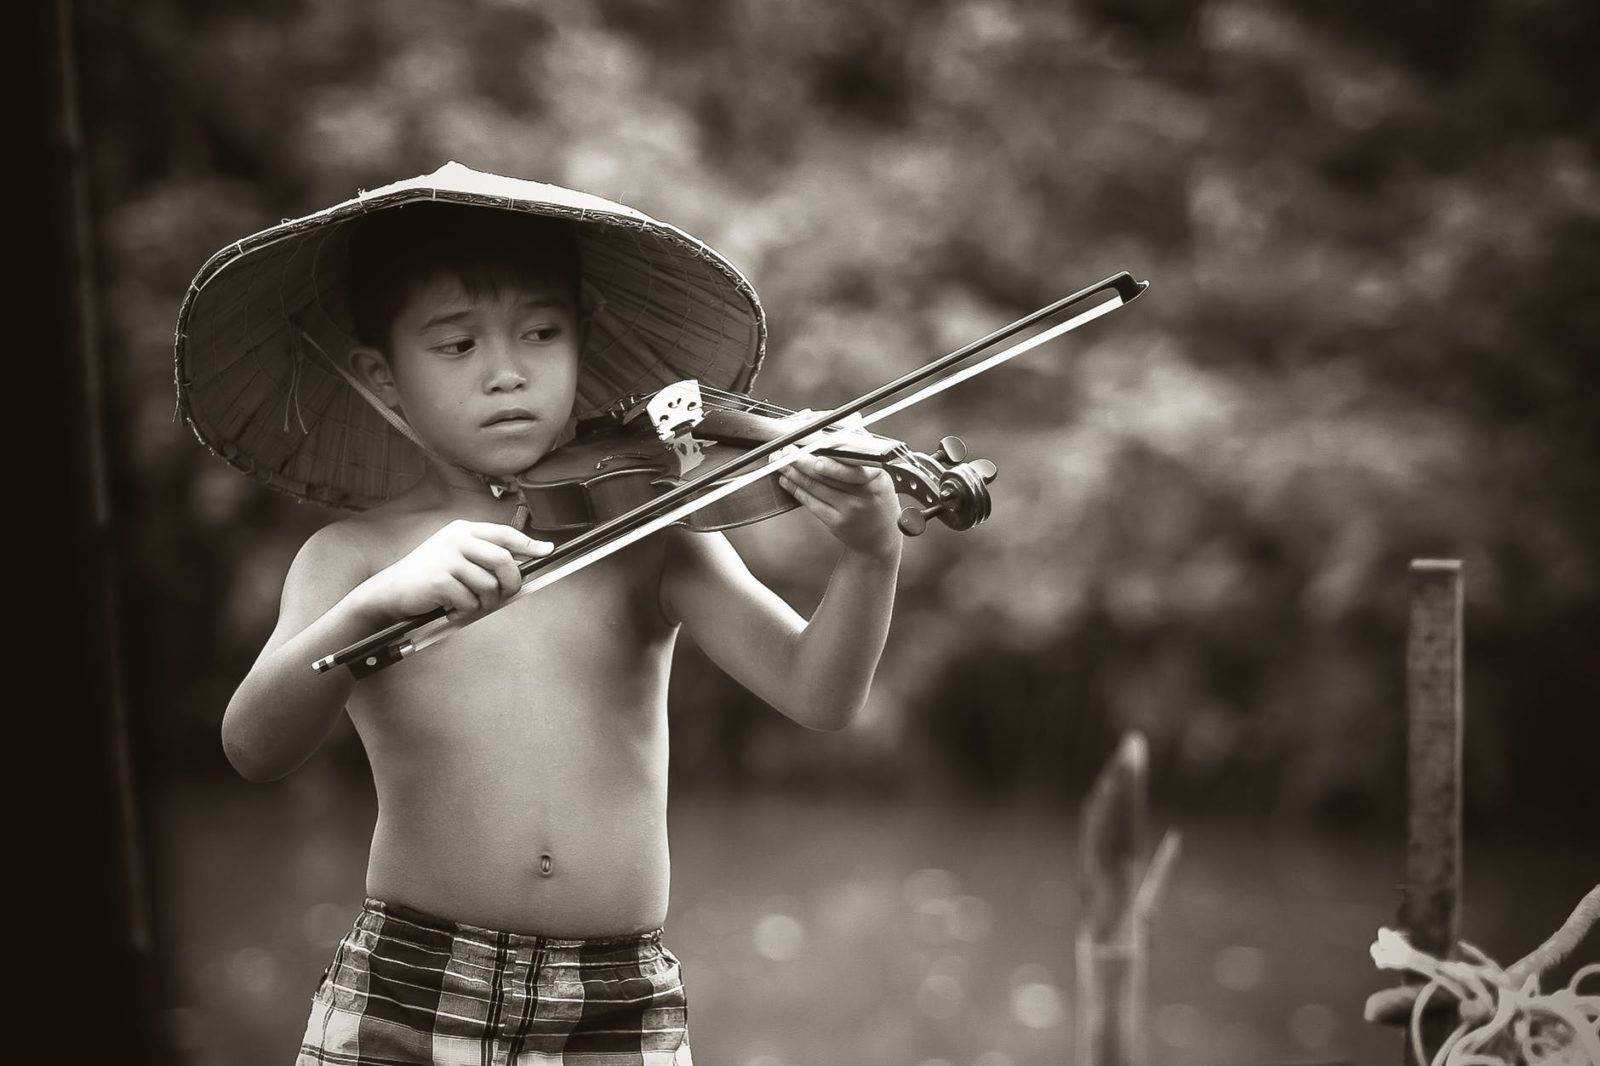 boy playing violin without fear